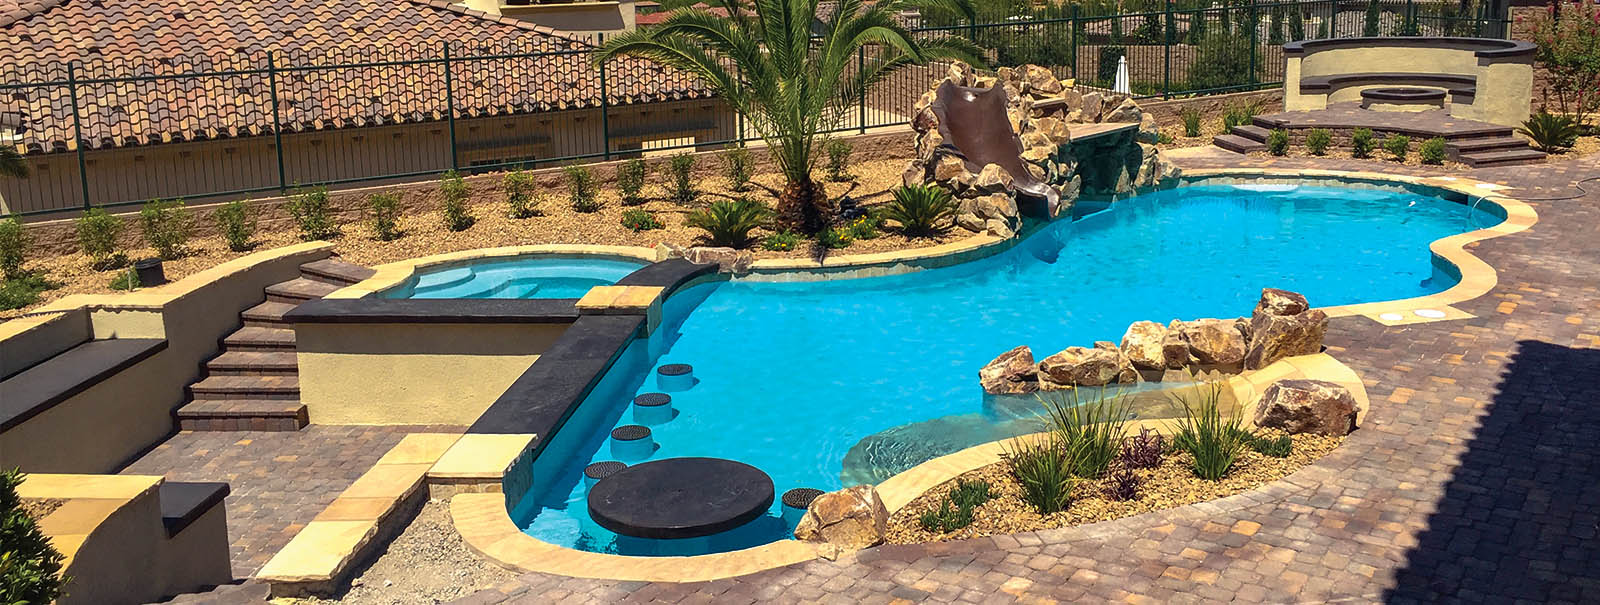 Las vegas custom swimming pool builders blue haven pools for Inground swimming pool companies